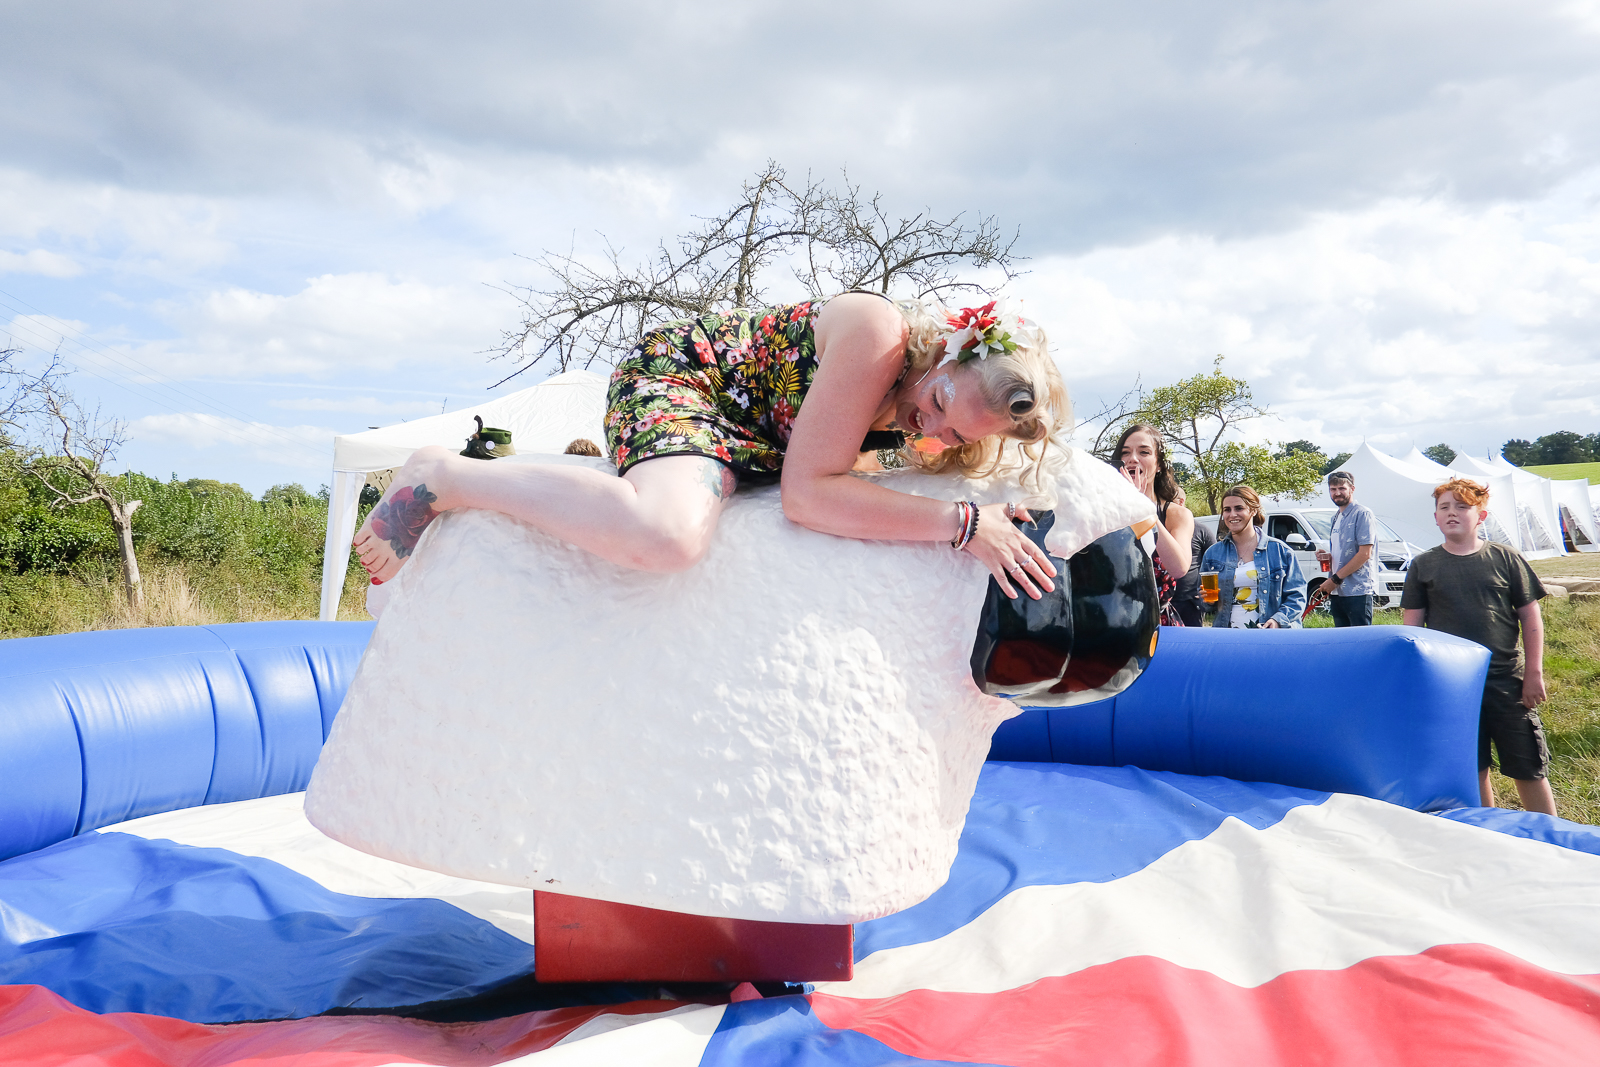 Bucking Sheep at Exmouth festival themed wedding